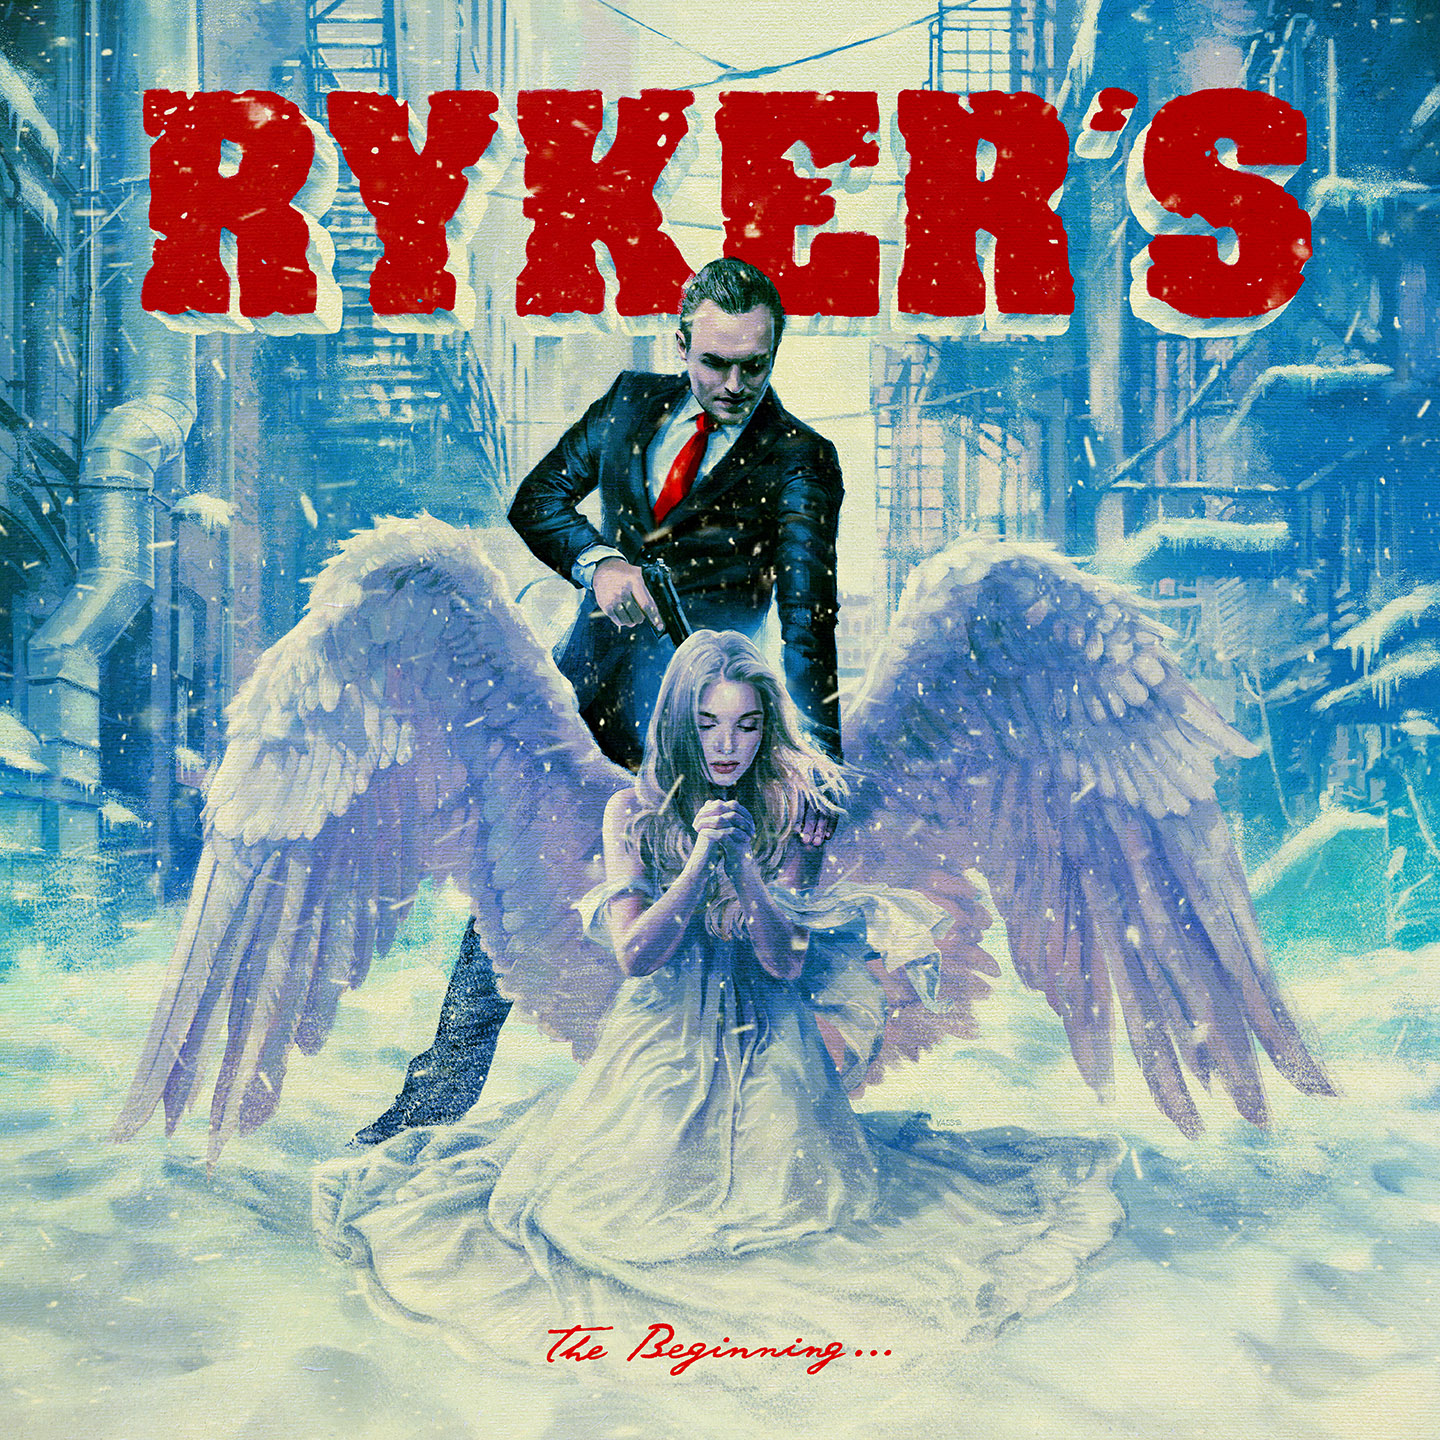 rykers-the-beginning-doesnt-know-the-end-das-hc-4-life-review